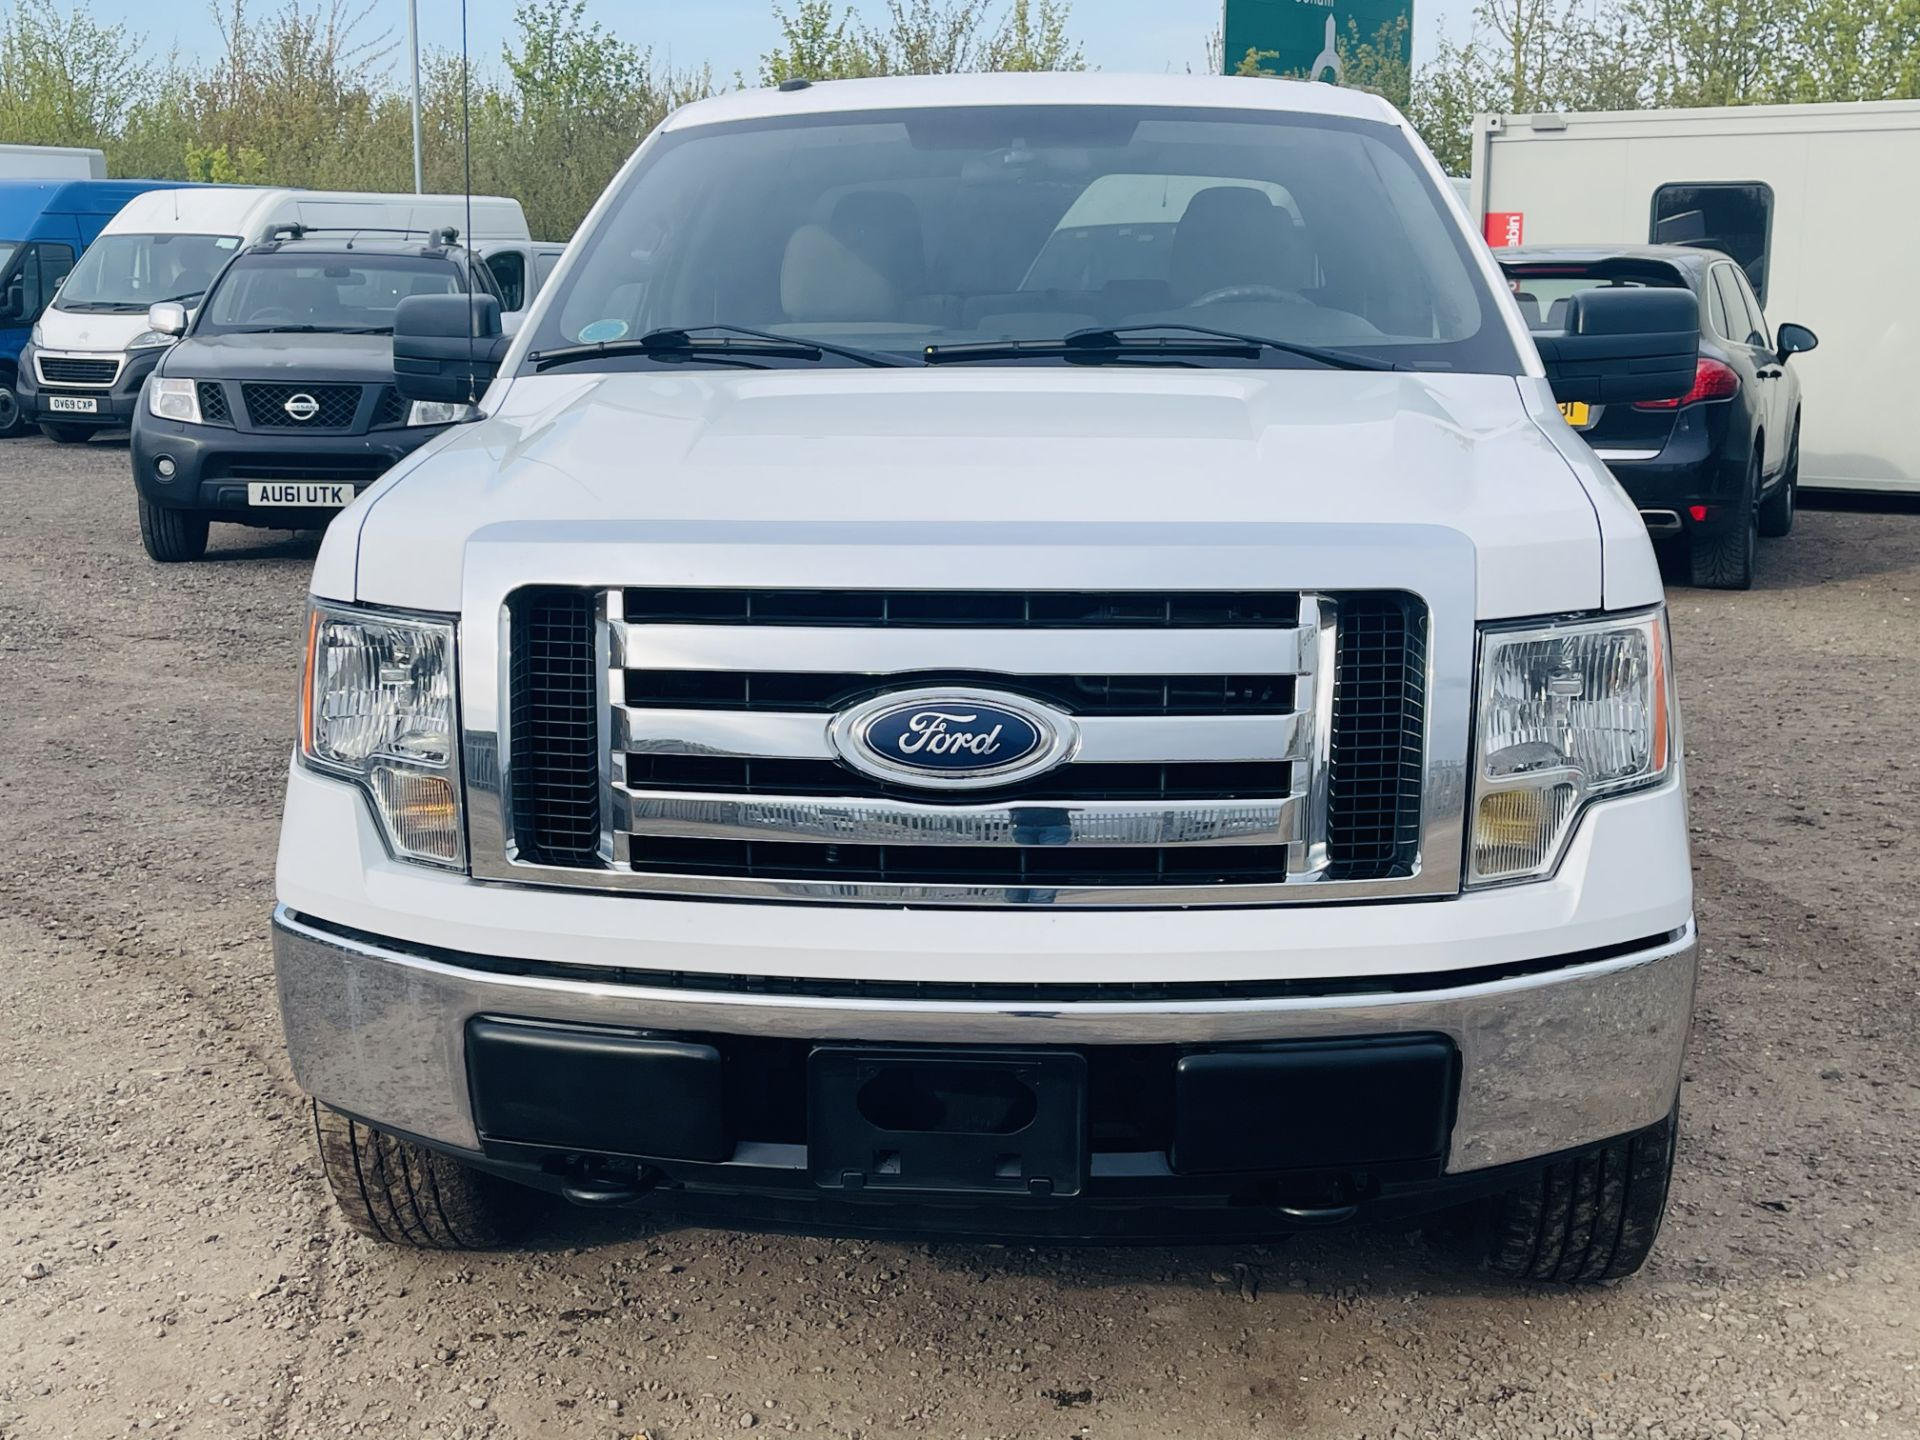 Ford F-150 XLT 4.6L V8 Super-crew 4WD 2010 ' 2010 Year' 6 Seats - Air con - NO RESERVE - Image 3 of 24